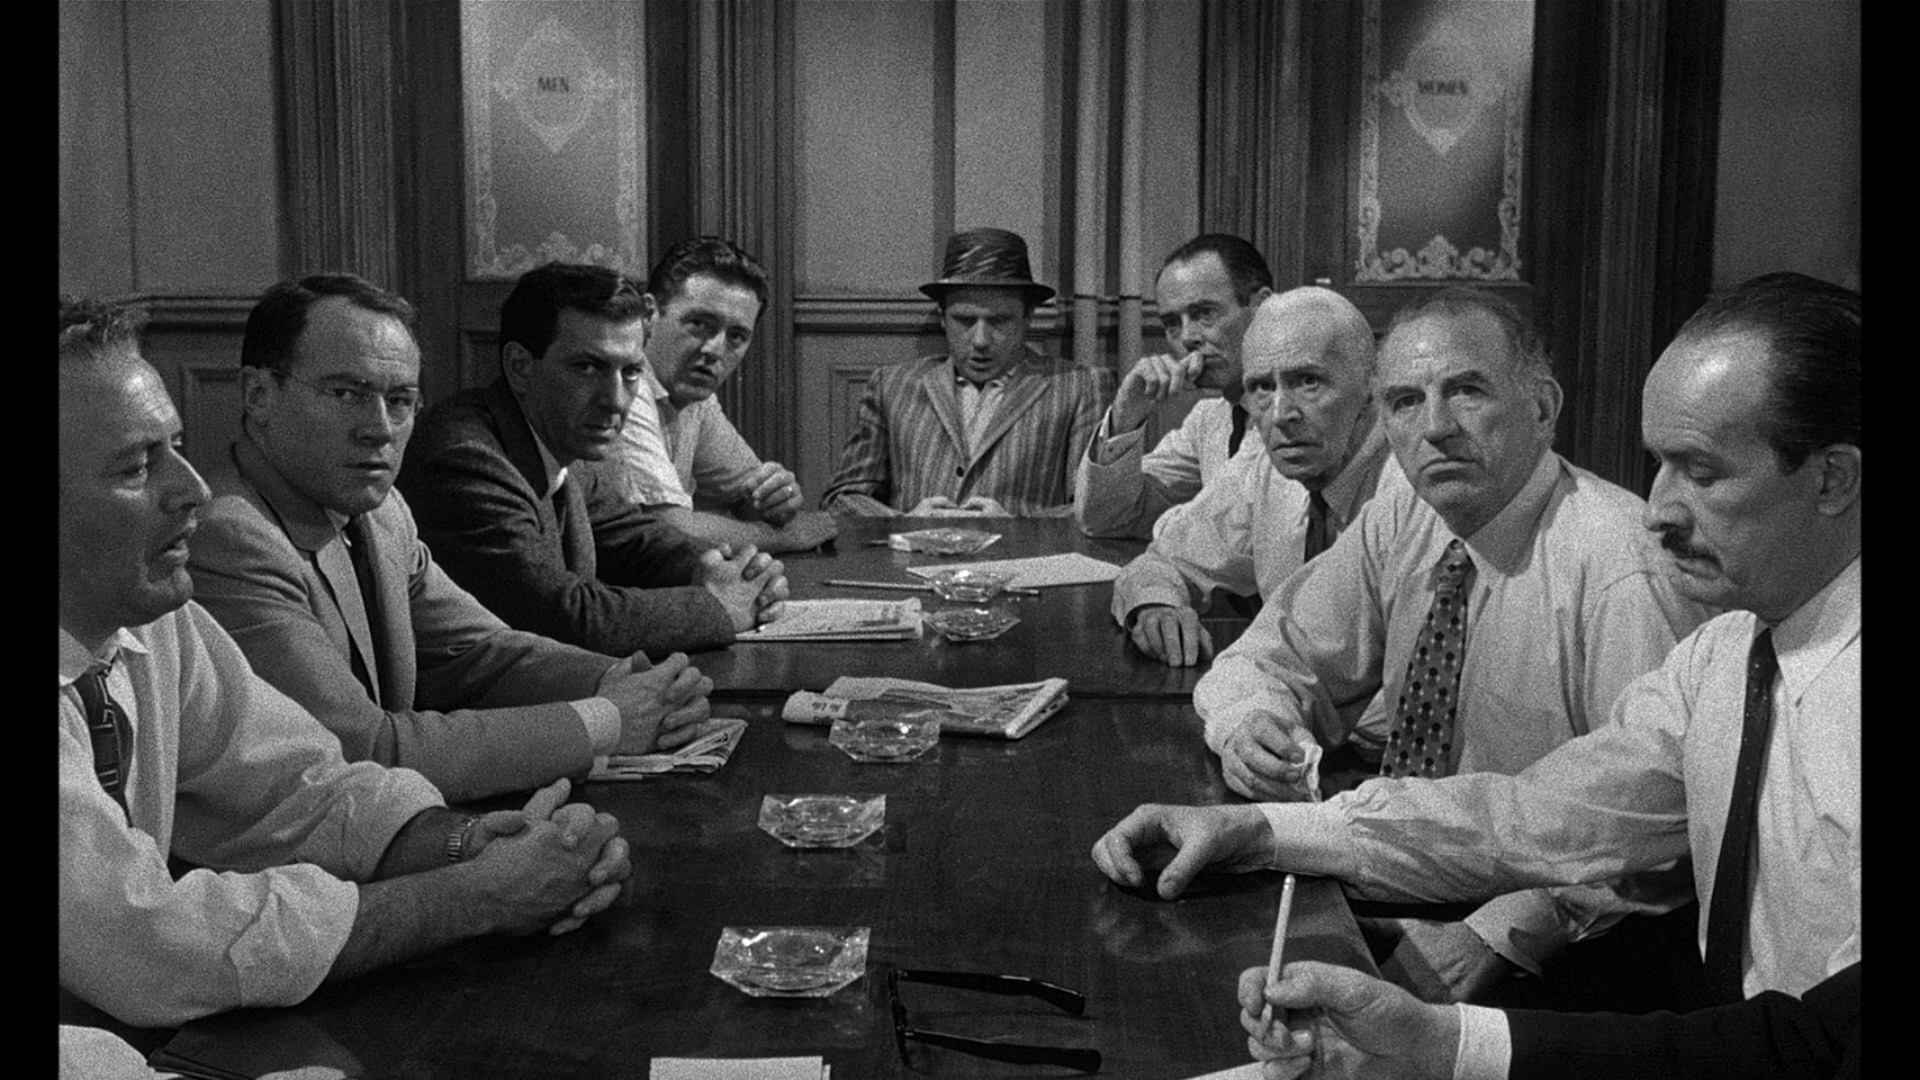 12 Angry Men HD Wallpaper Background Image 1920x1080 ID 1920x1080